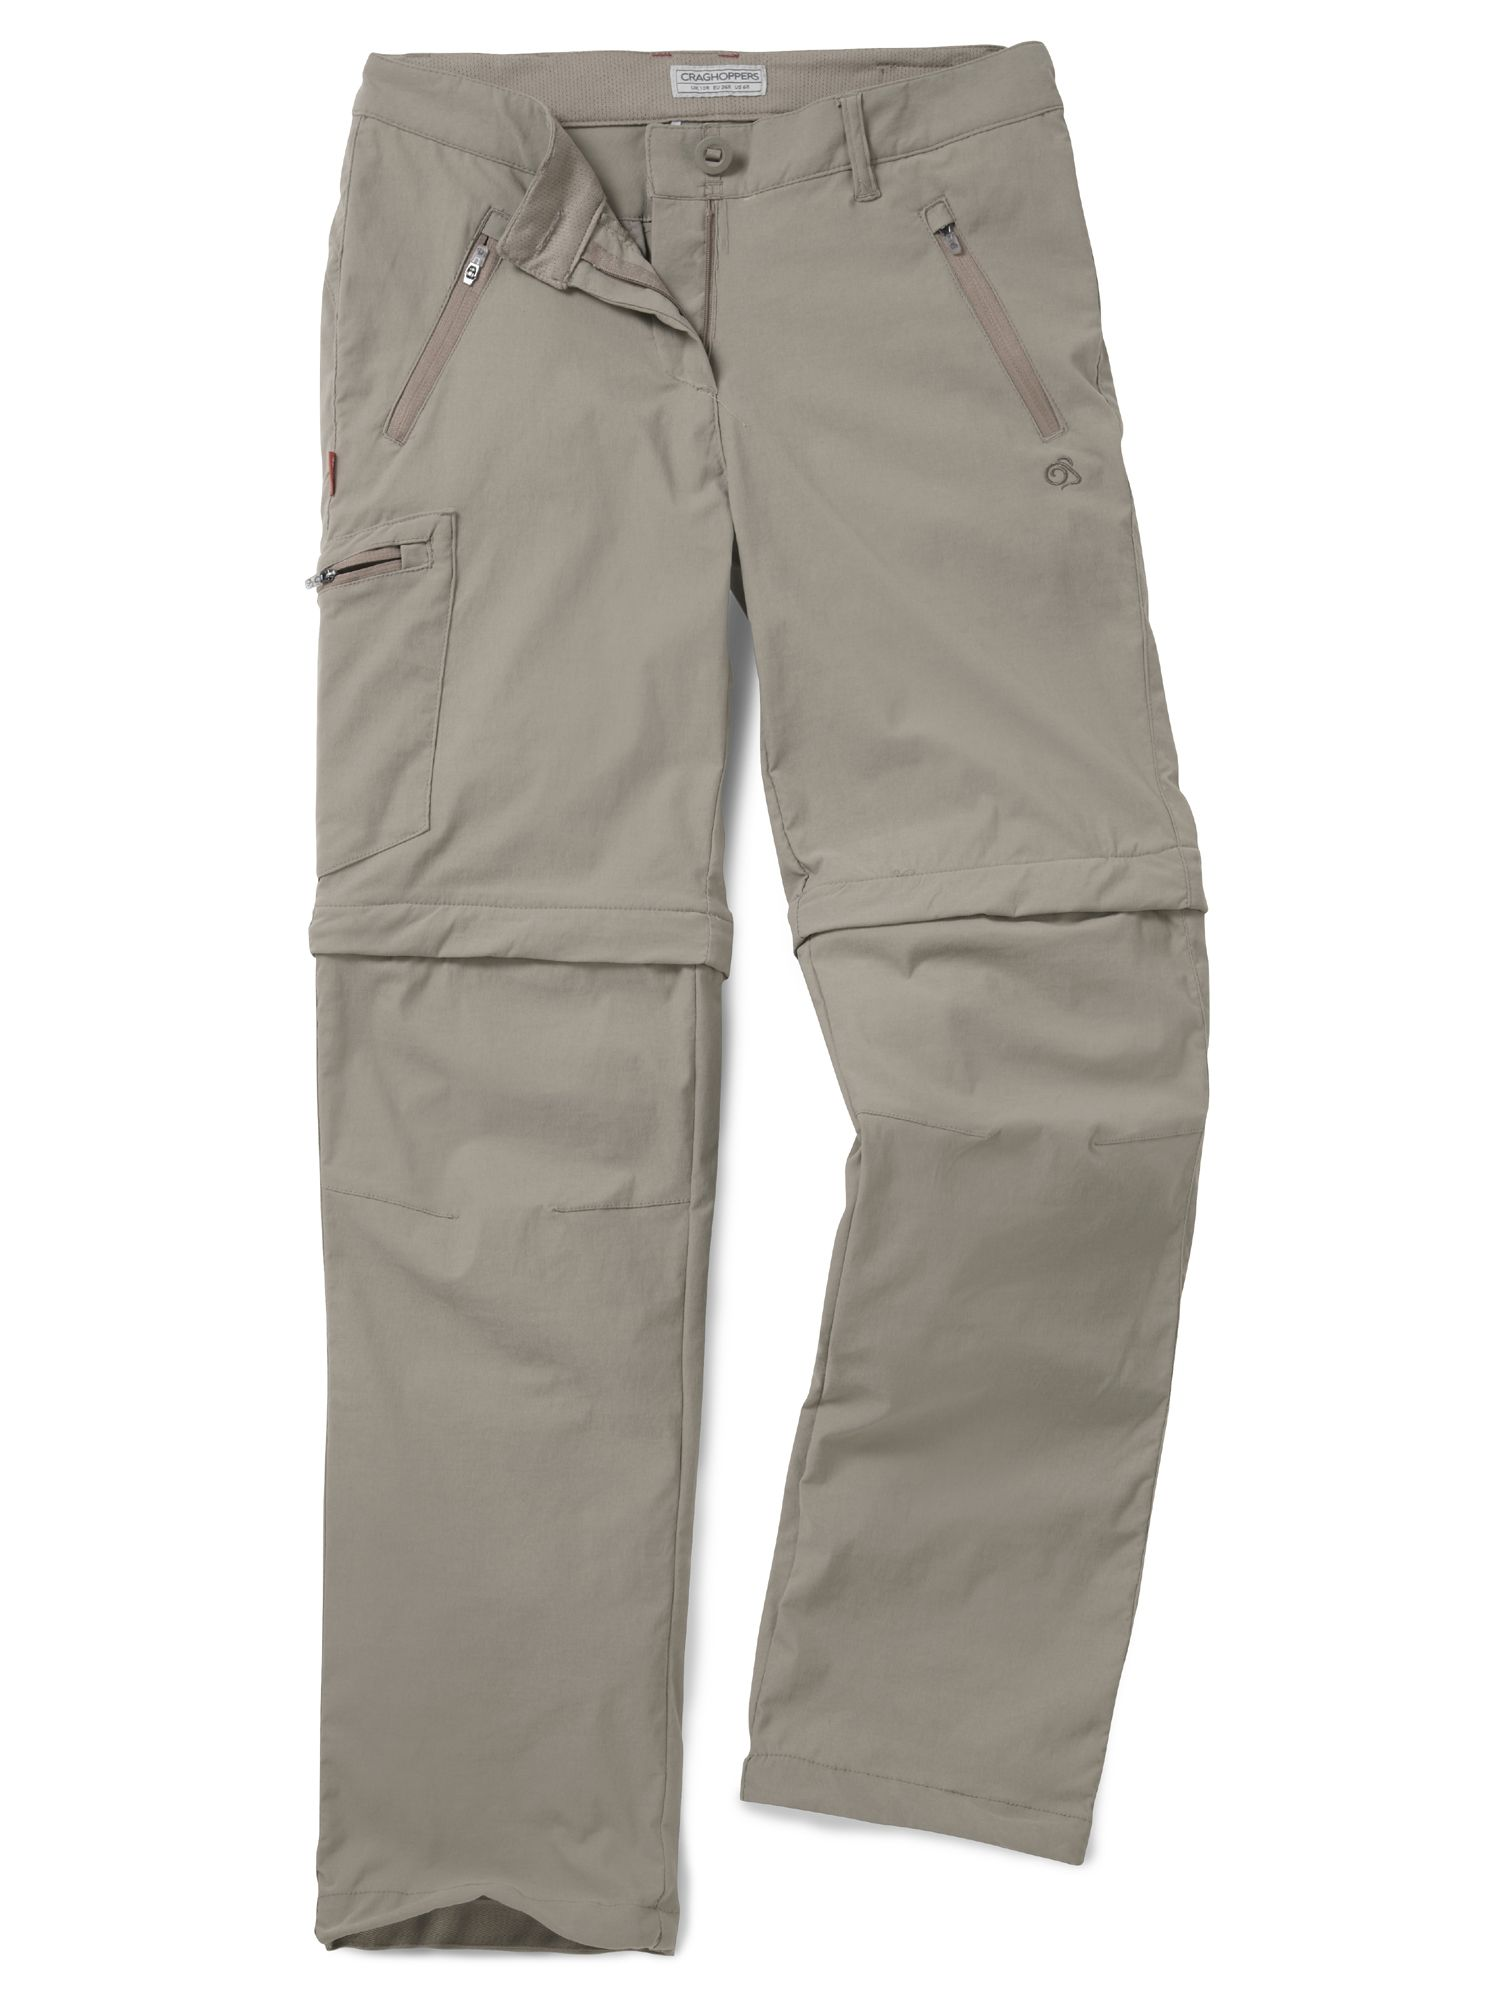 Craghoppers Craghoppers NosiLife Pro Convertible Trousers, Mushroom